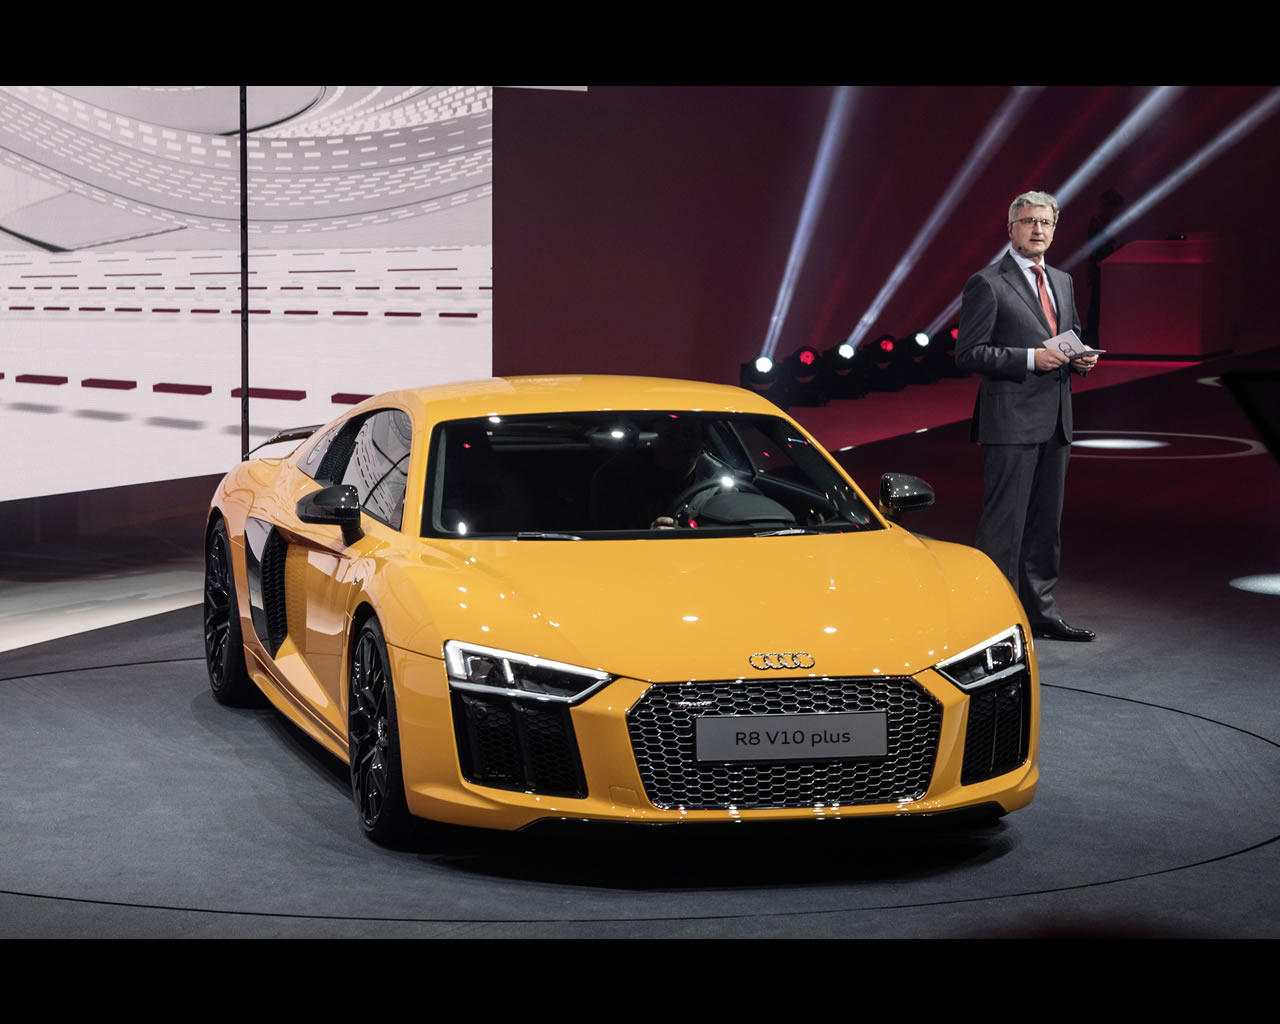 the Audi R8 V10, R8 V10 plus, R8 electric etron and motorsport R8 LMS